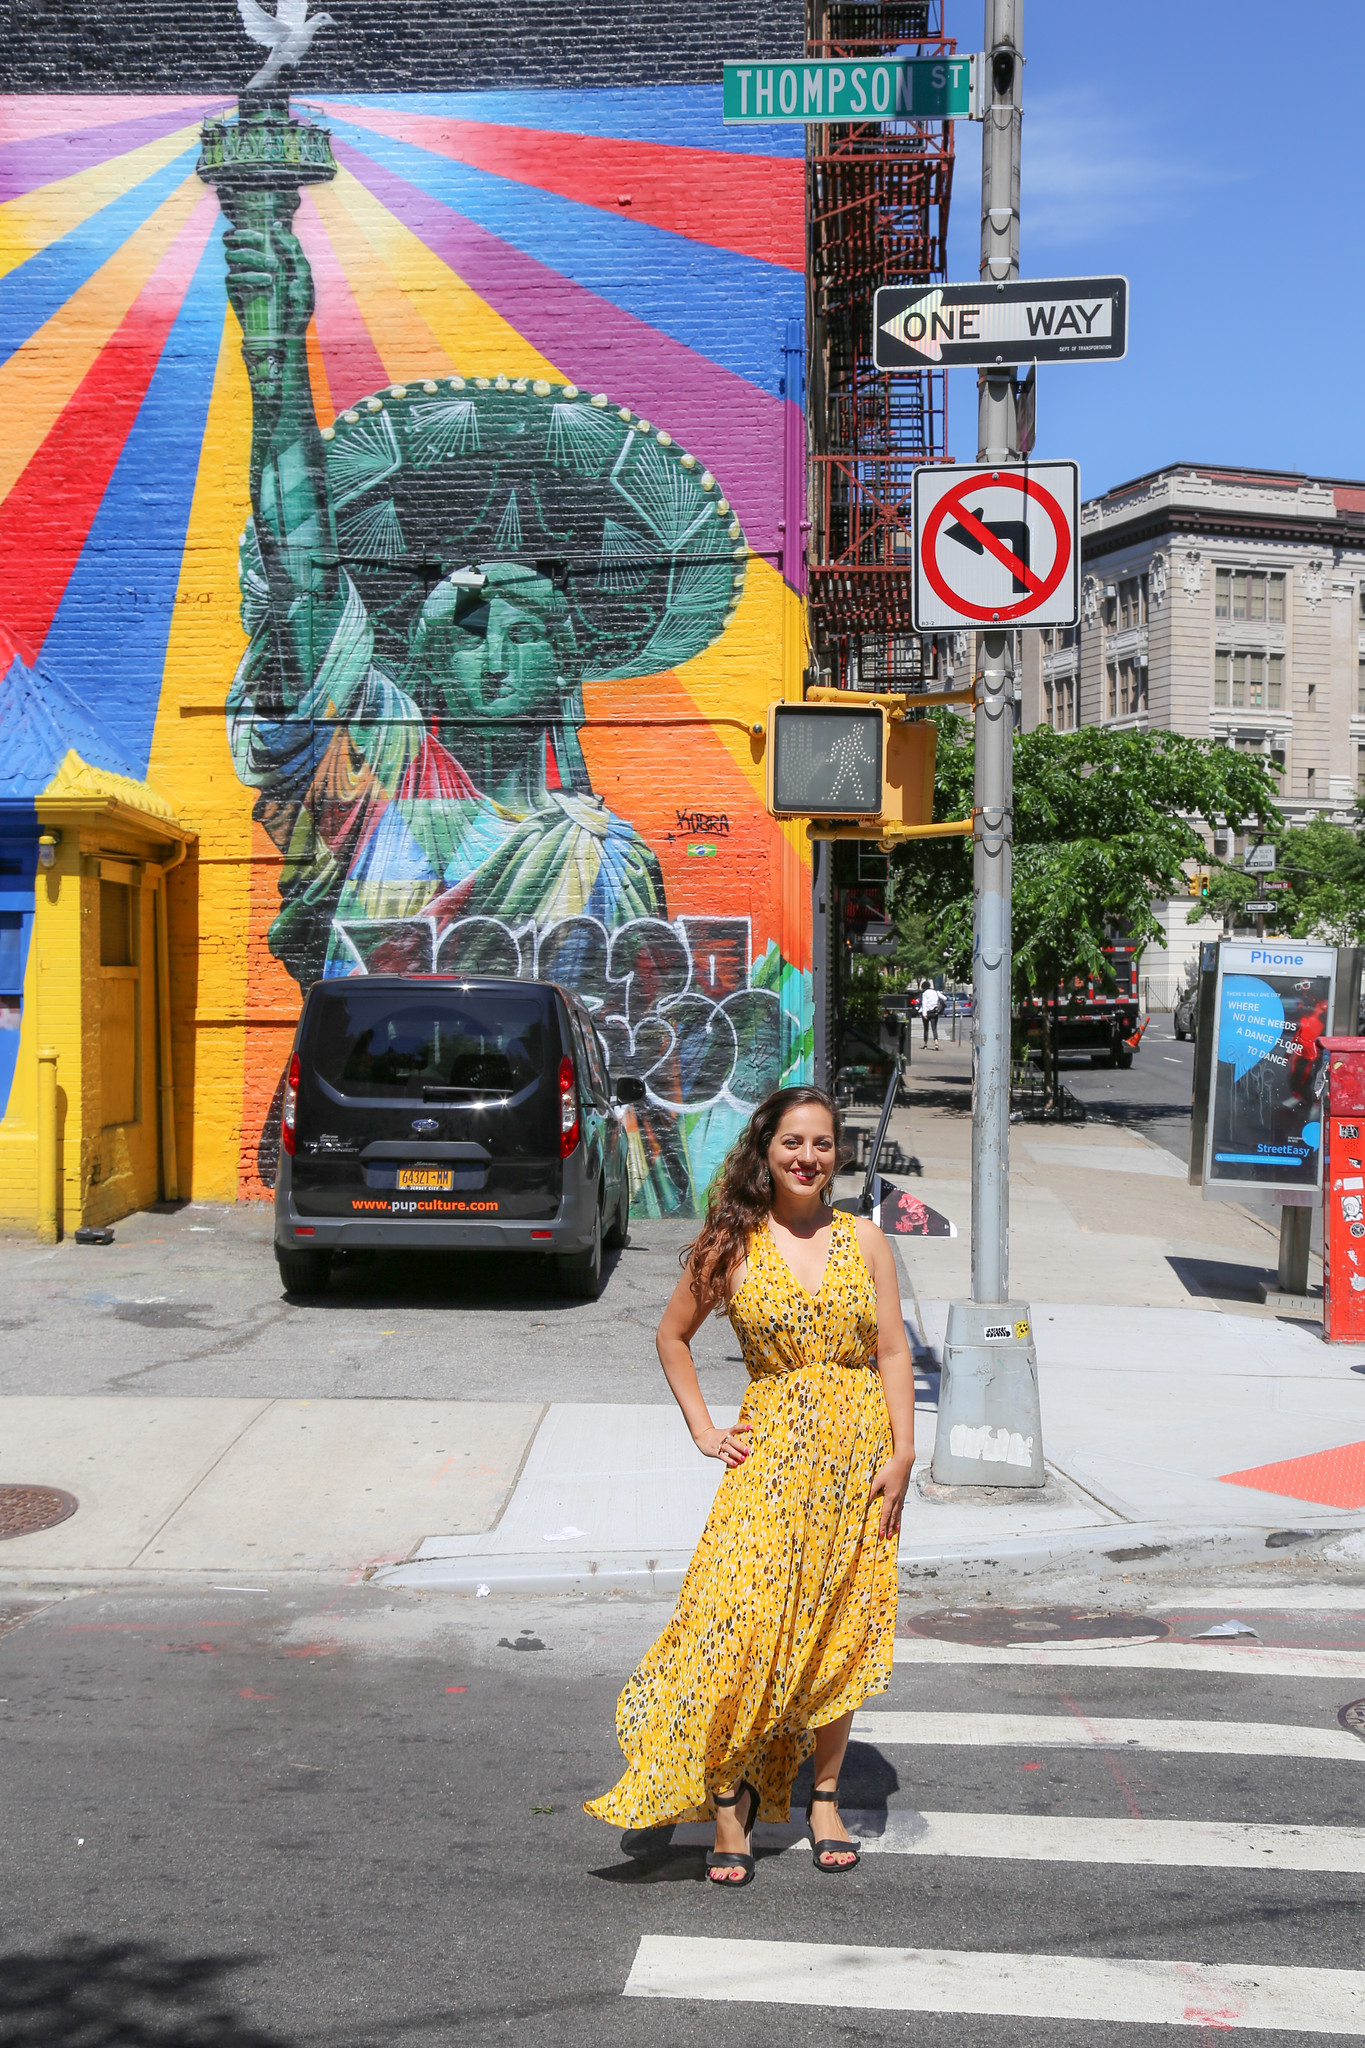 Kate in a yellow dress in front of a Statue of Liberty mural in SoHo, NYC